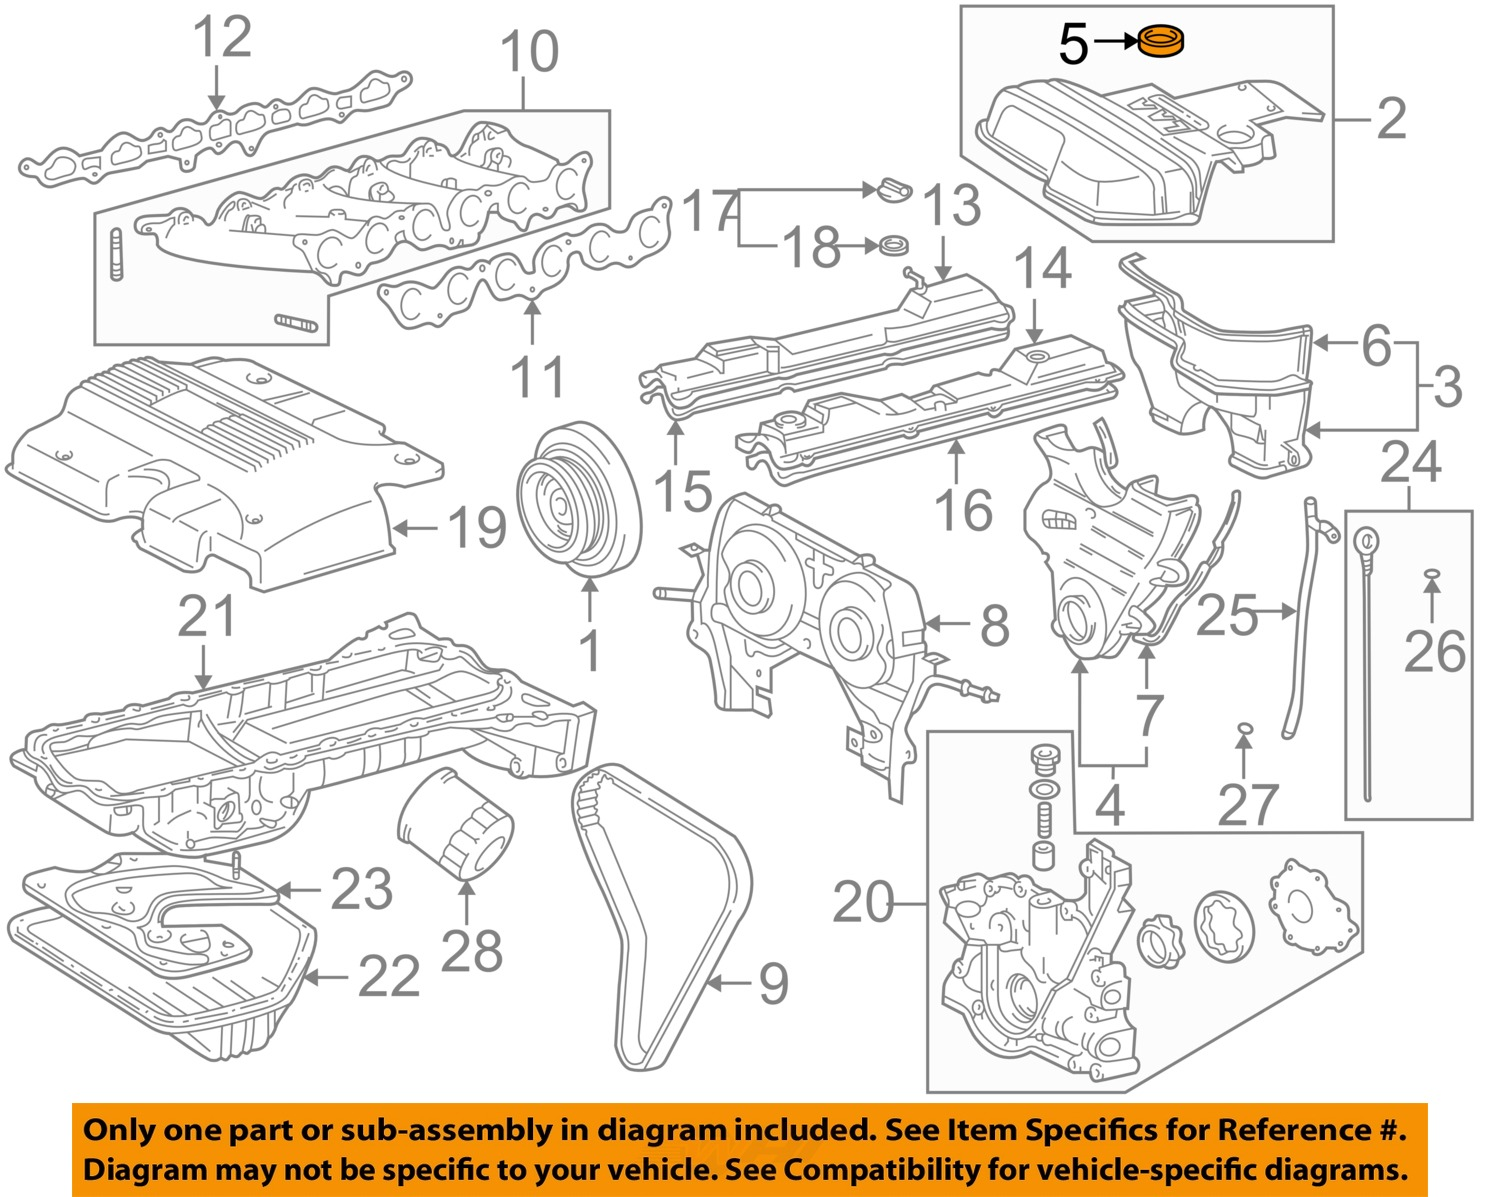 Lexus TOYOTA OEM 0102 IS300 30LL6 EngineOuter Timing Cover – L6 Engine Diagram